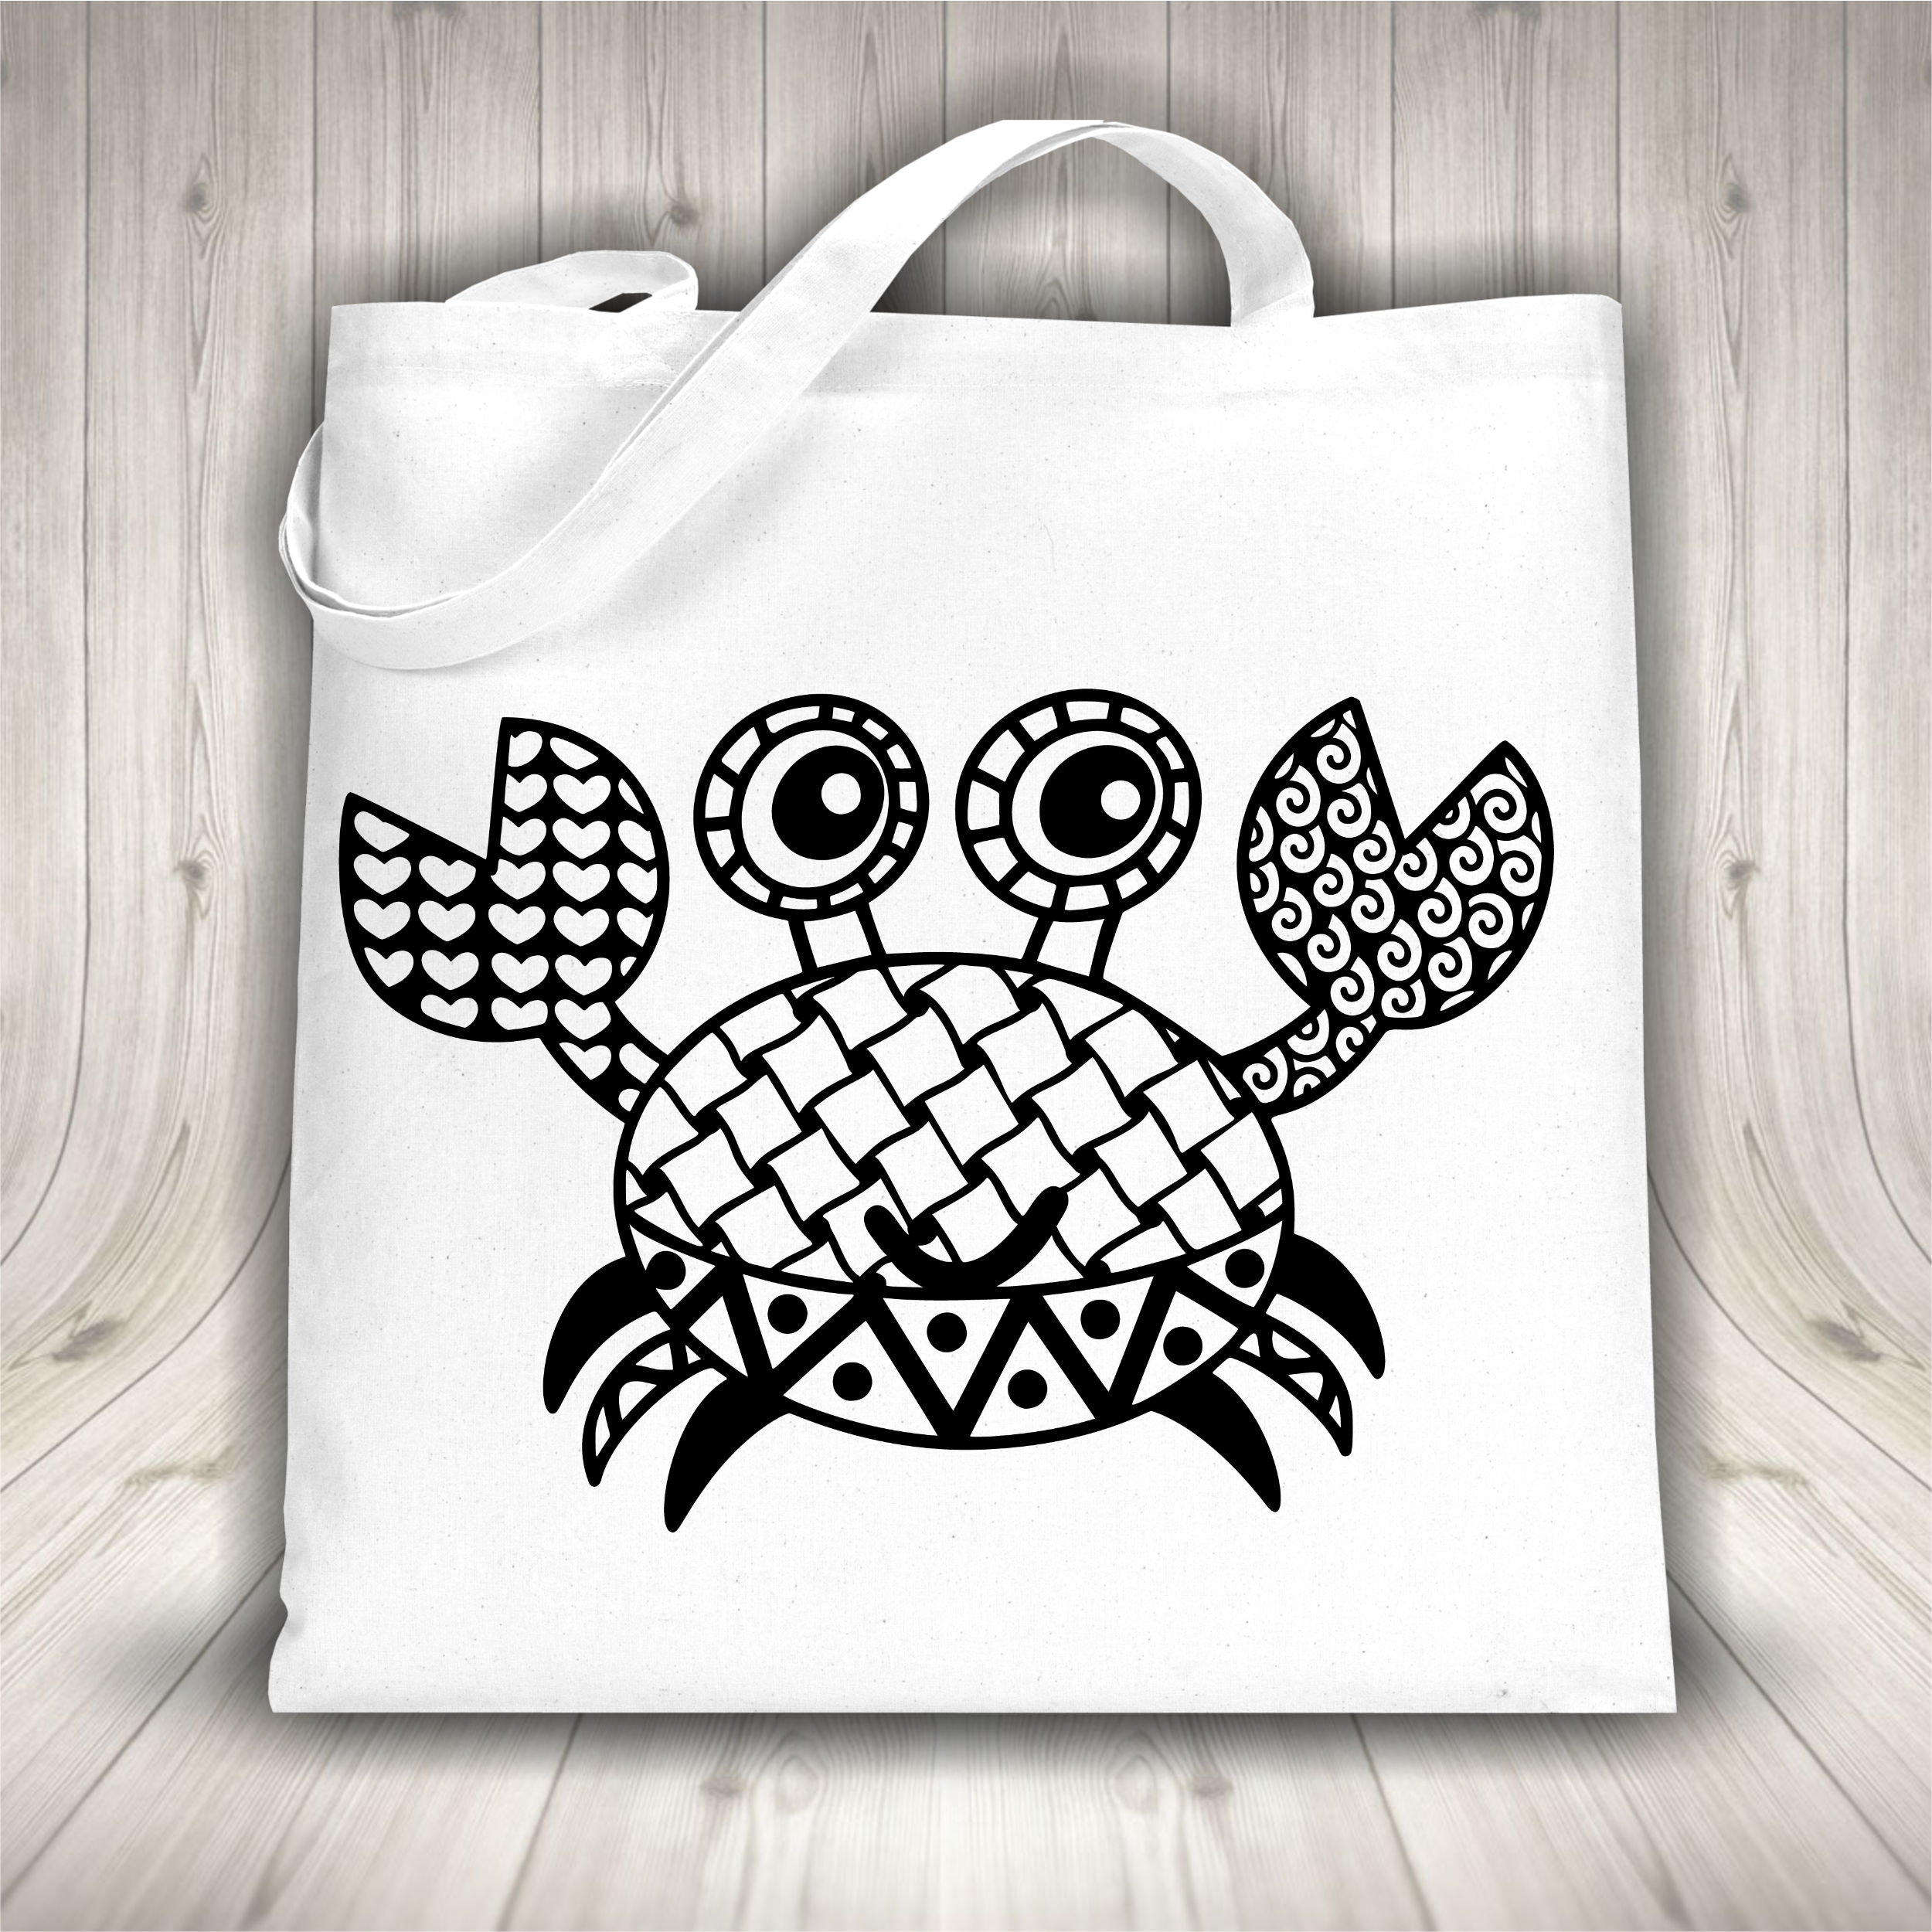 Crab SVG with Doodle patterns example image 2